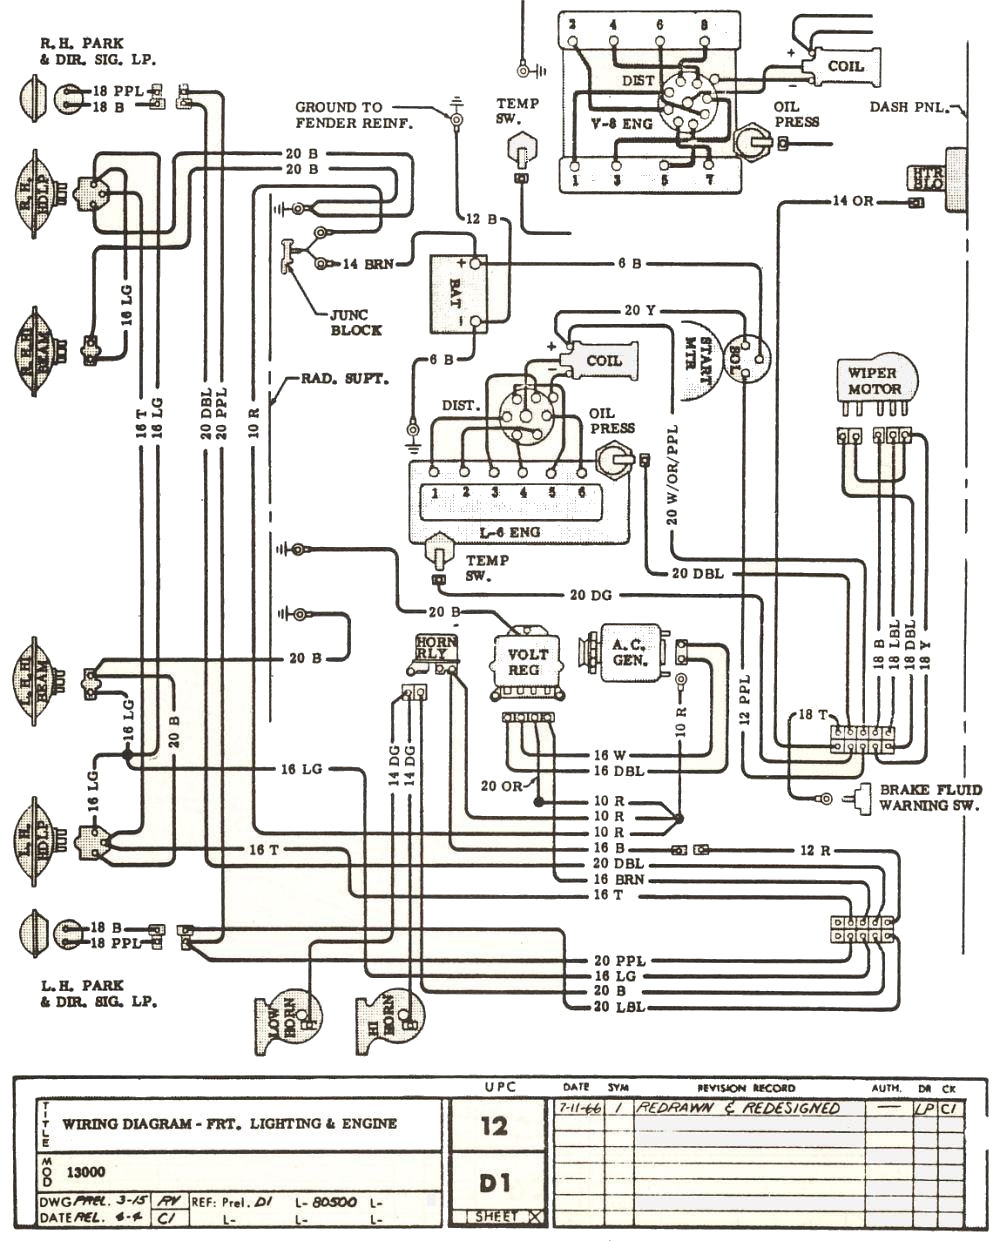 1970 chevy engine wiring harness ab 8772  1969 chevelle engine wiring diagram wiring diagram  1969 chevelle engine wiring diagram